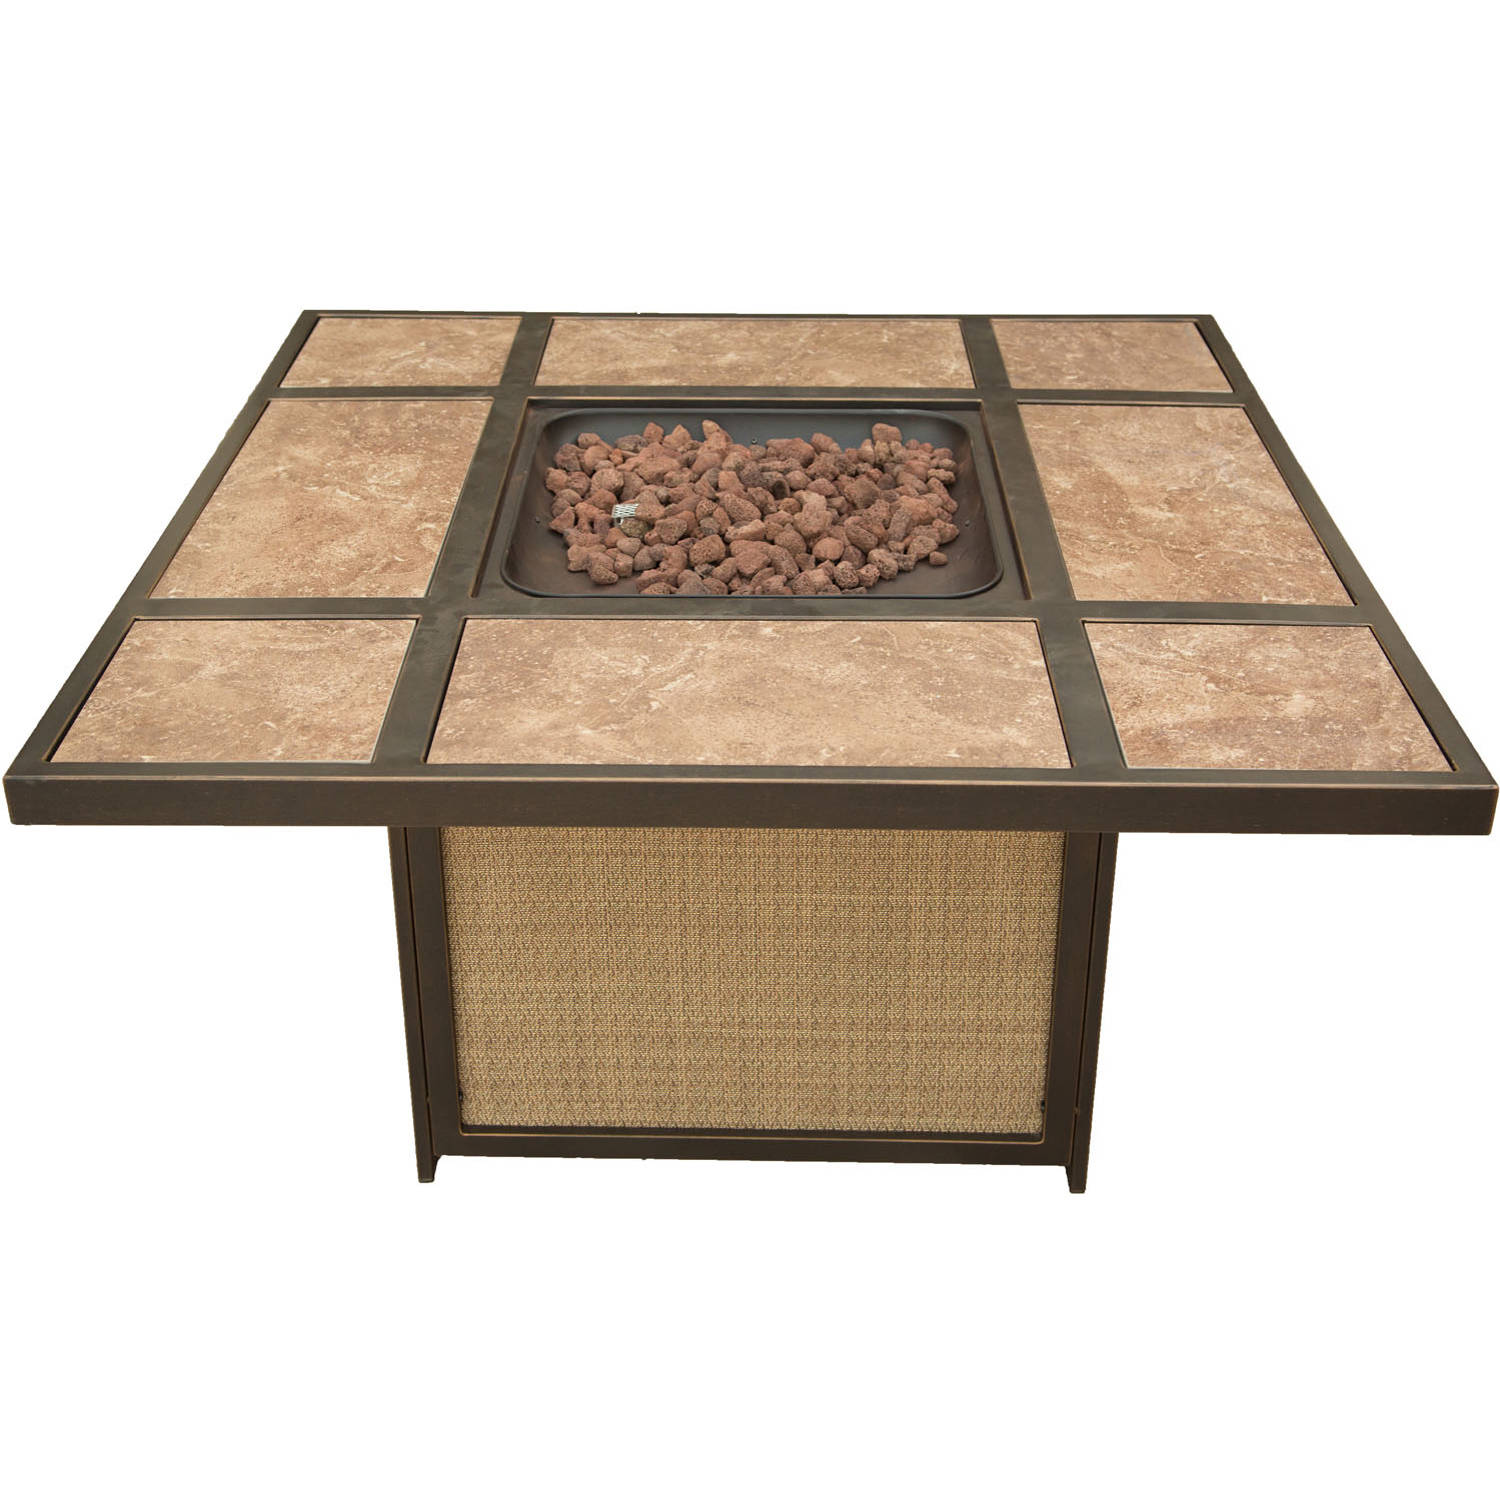 Cambridge Artisan Tile-Top Gas Fire Pit